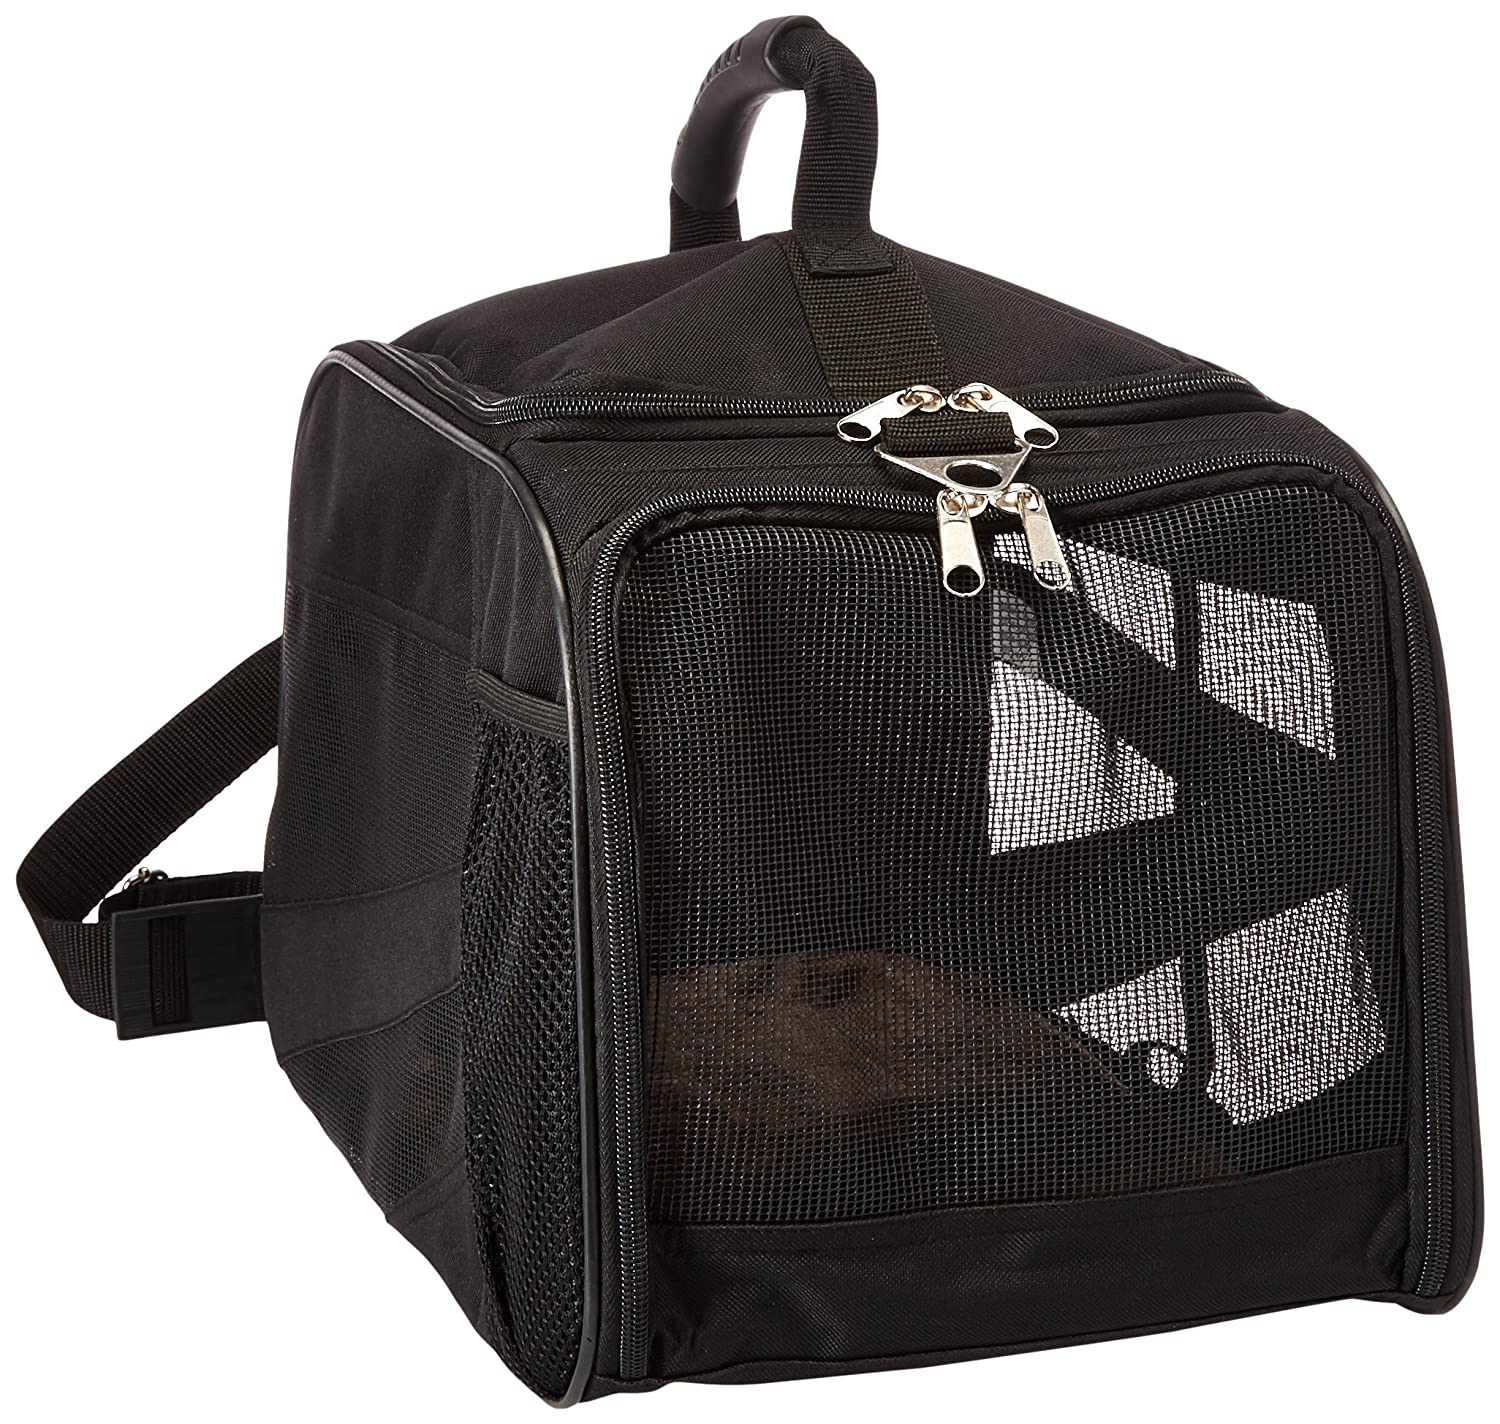 Amazon.com: dbest products Pet Smart Cart Carrier, Small, Black, Soft Sided Collapsible Folding Travel Bag, Dog Cat Airline Approved Tote Luggage Backpack: ...